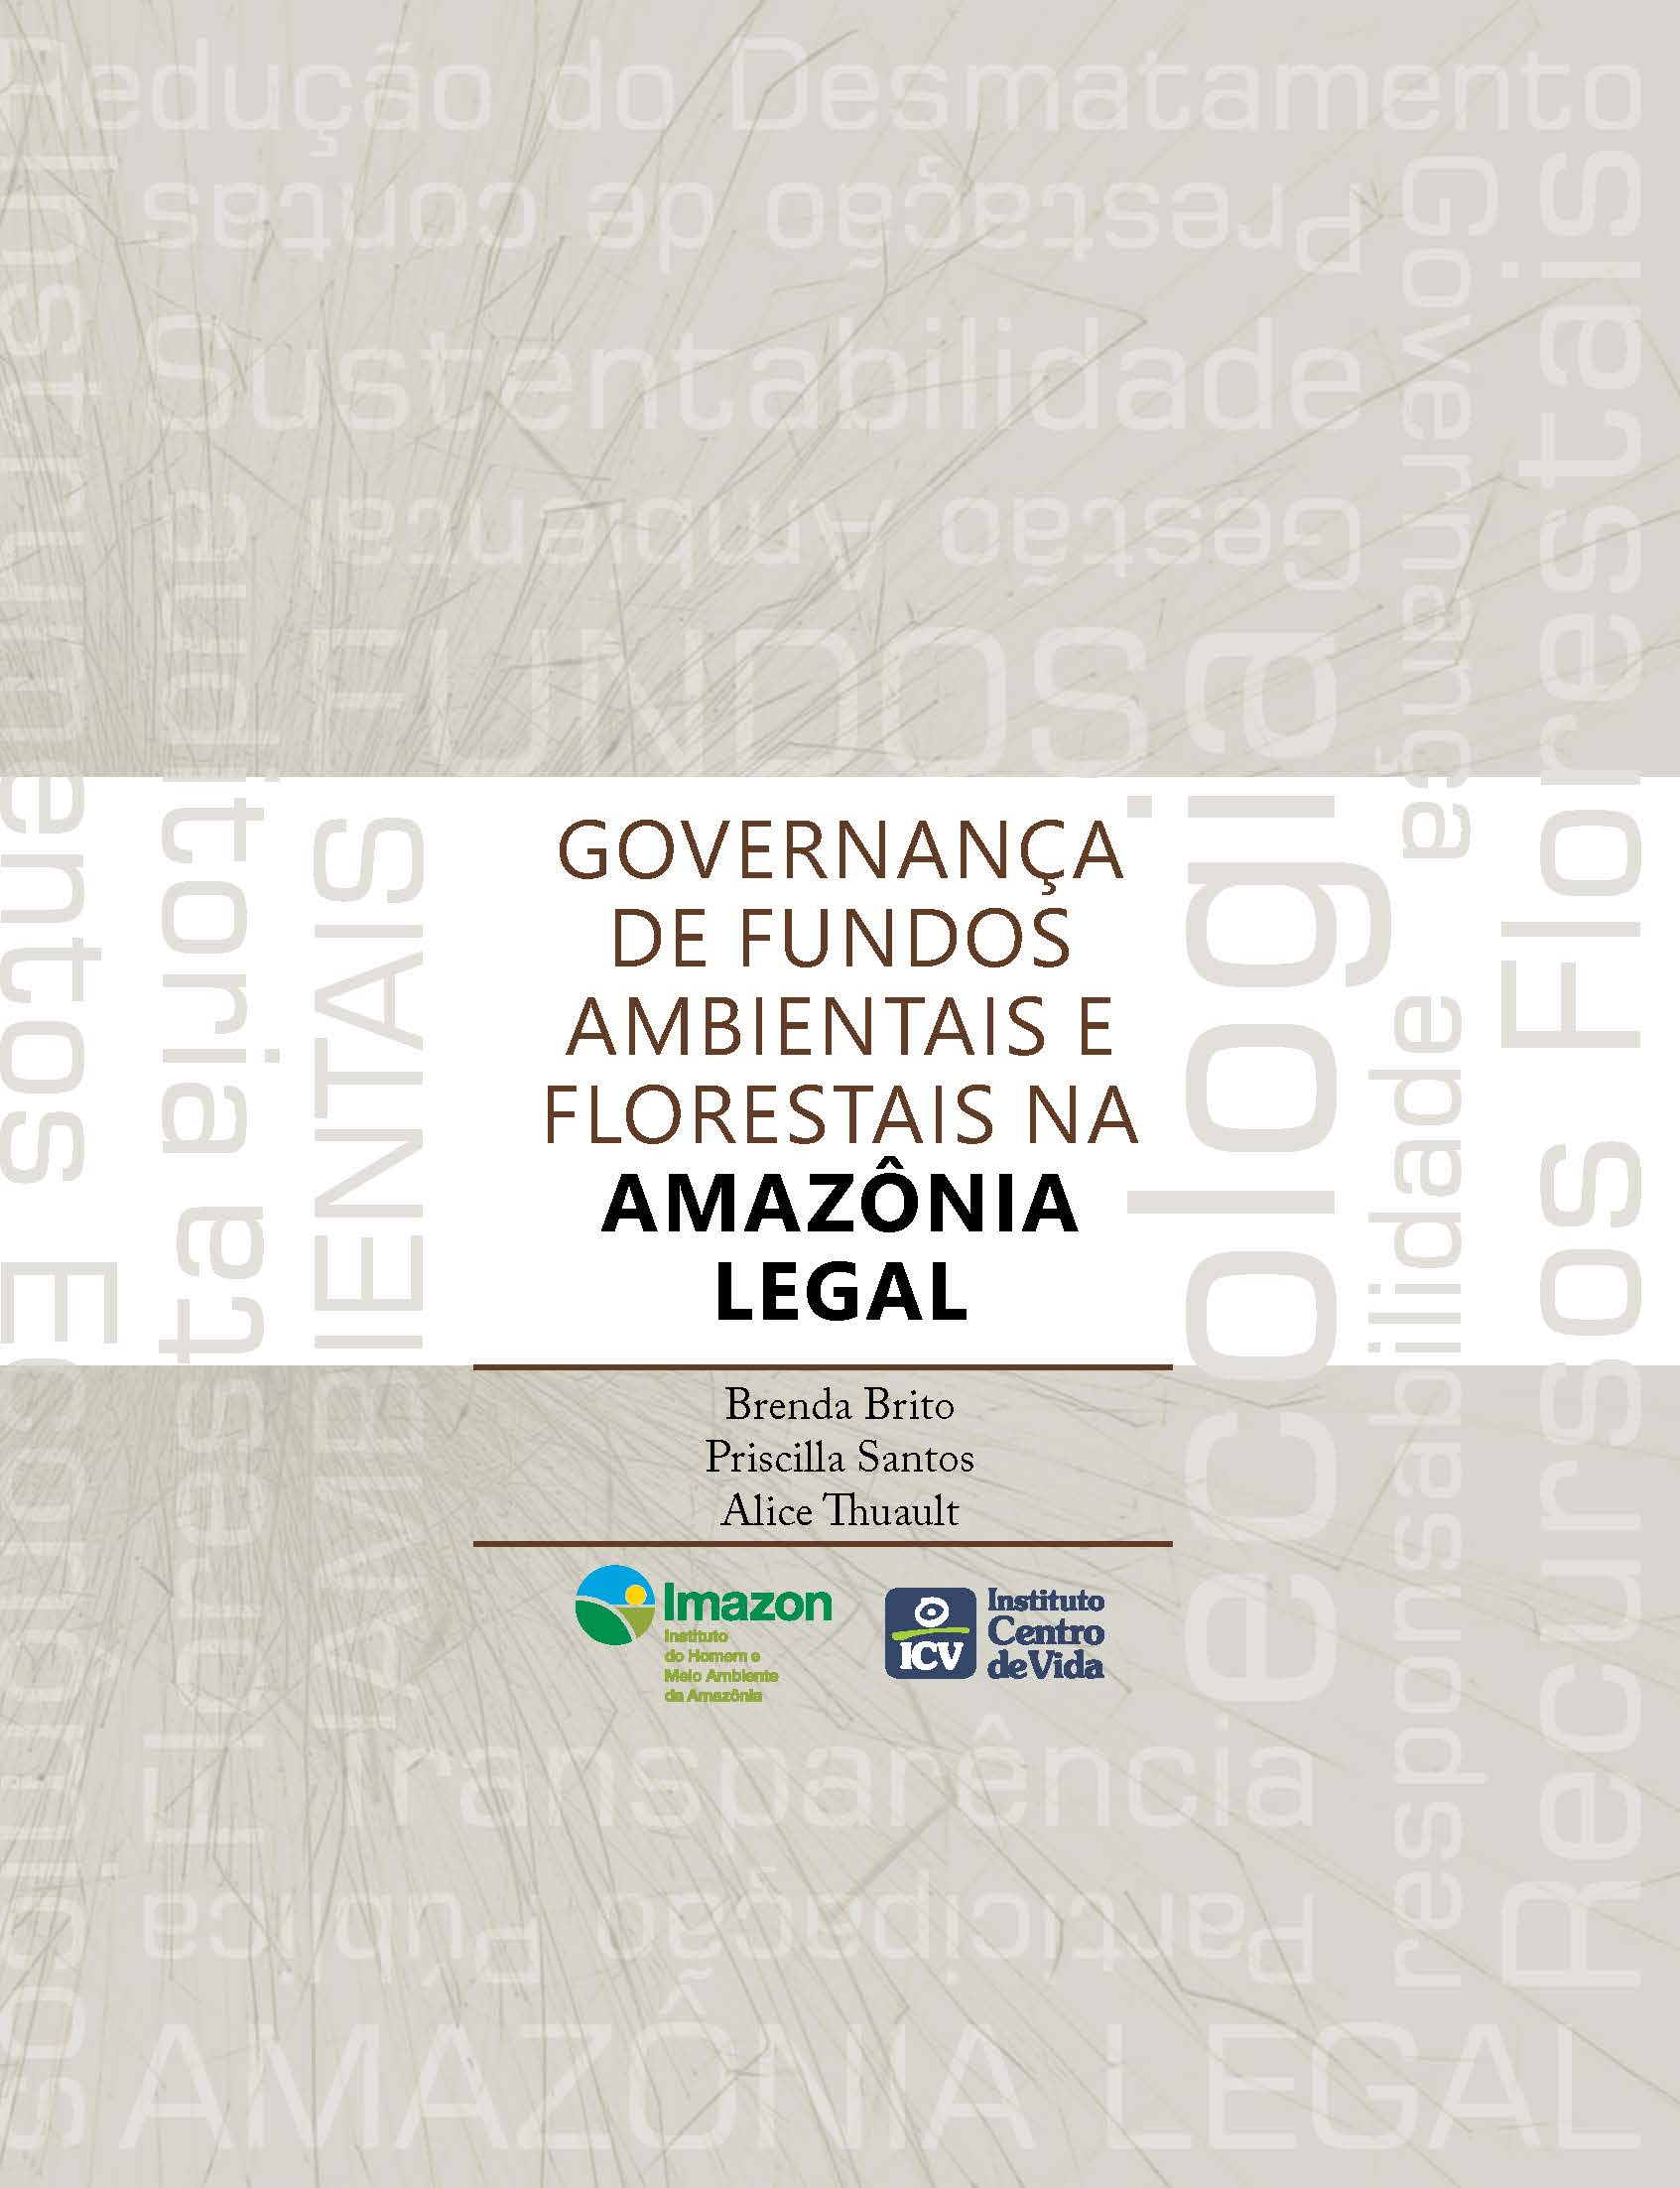 Capa da Governança de fundos ambientais e florestais na Amazônia Legal